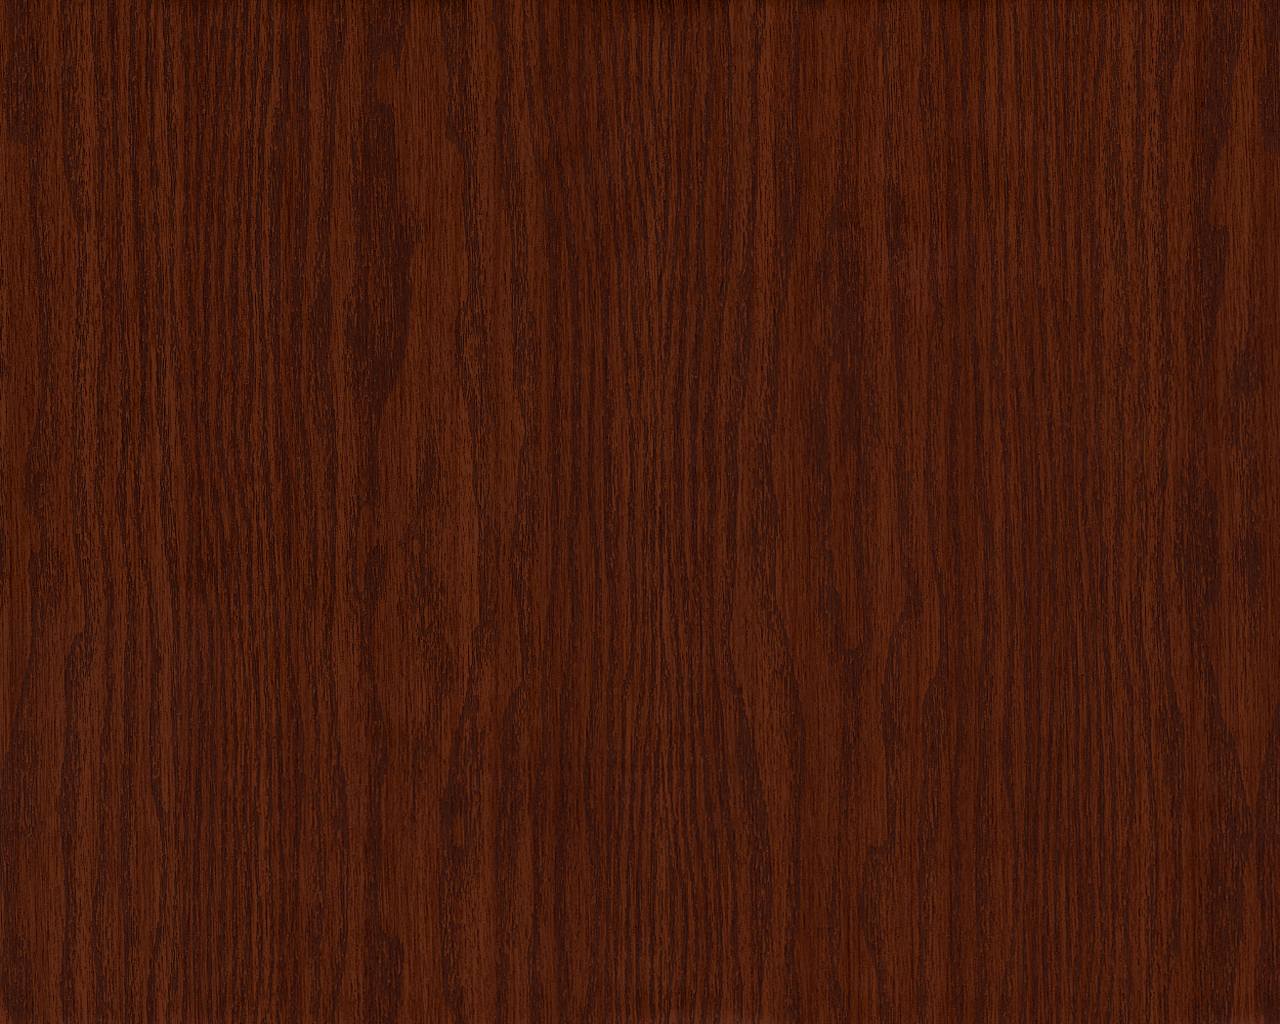 Wood Texture Wallpaper 1280x1024 Wood Texture 1280x1024